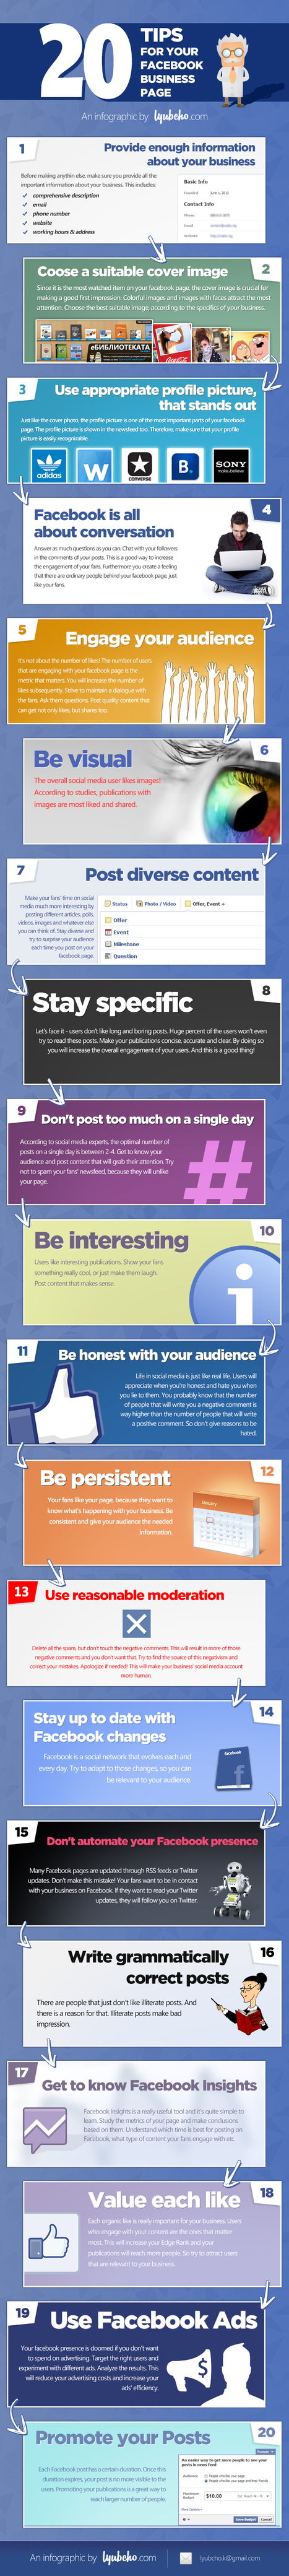 Infographic: 20 Tips for your Facebook Business Page | Wepyirang | Scoop.it